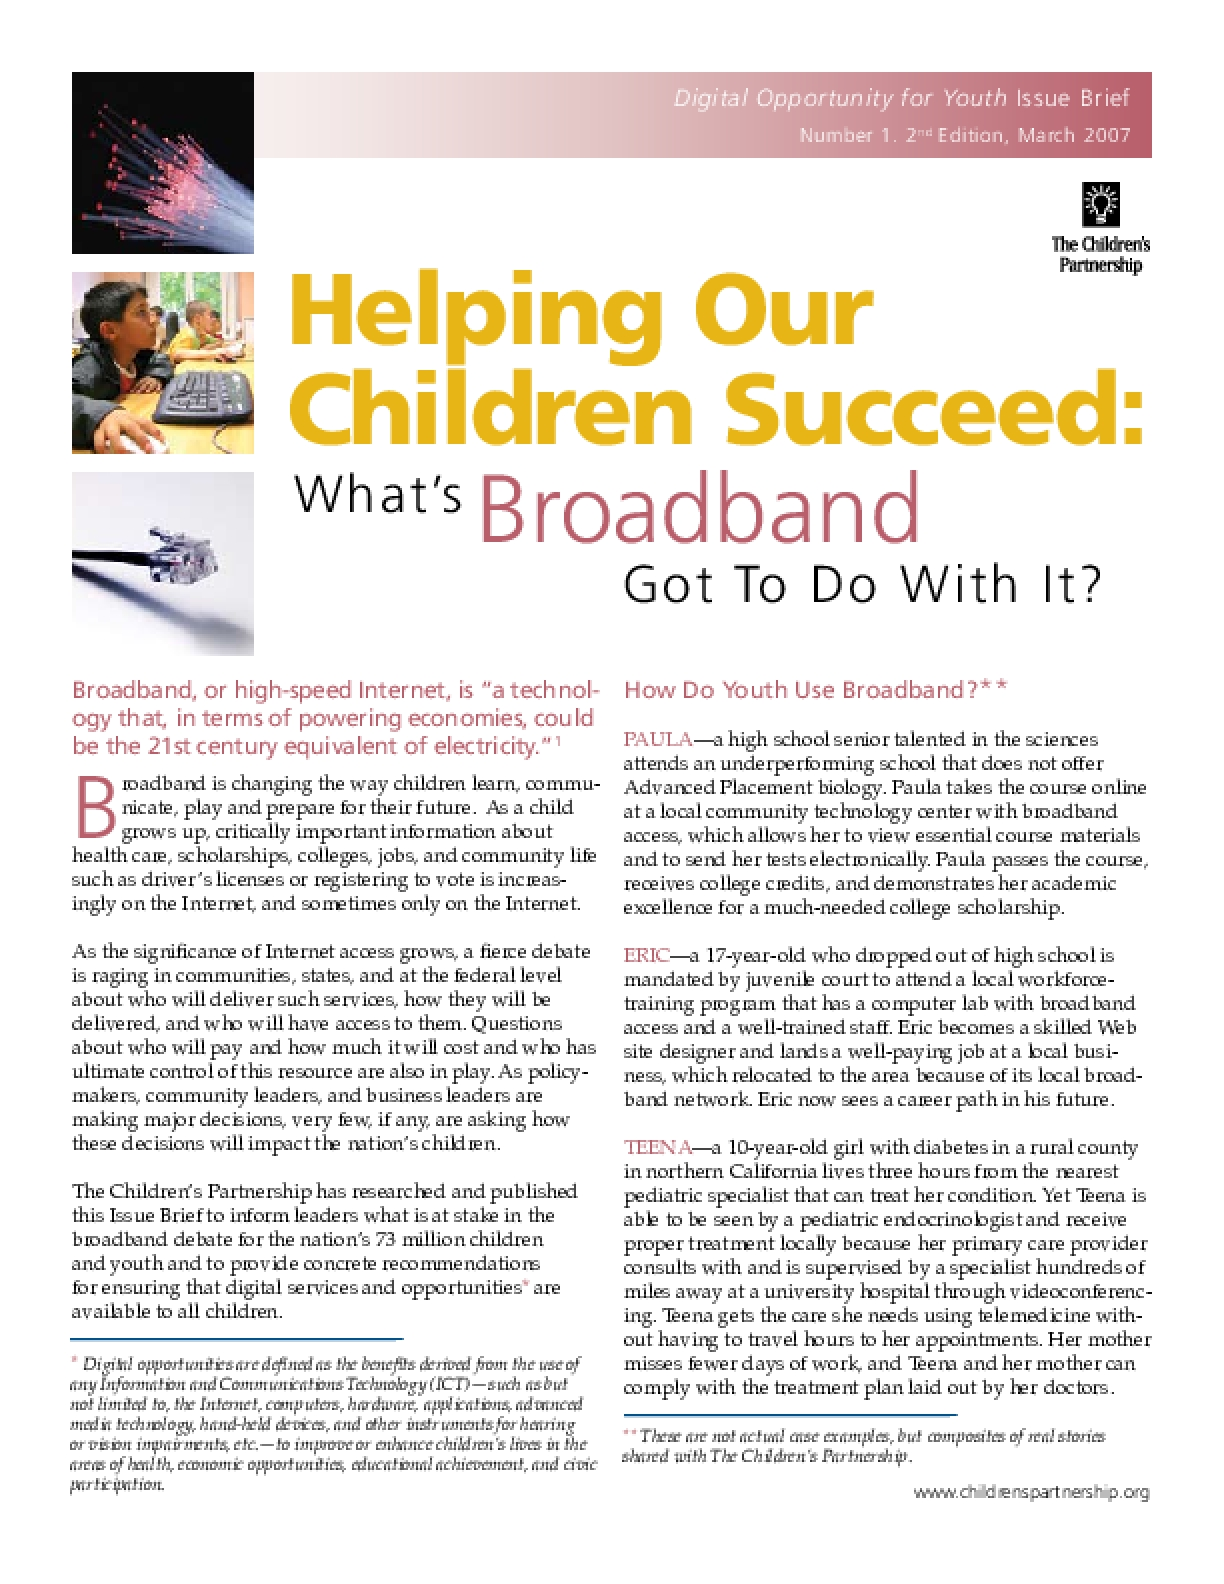 Helping Our Children Succeed: What's Broadband Got to Do With It?